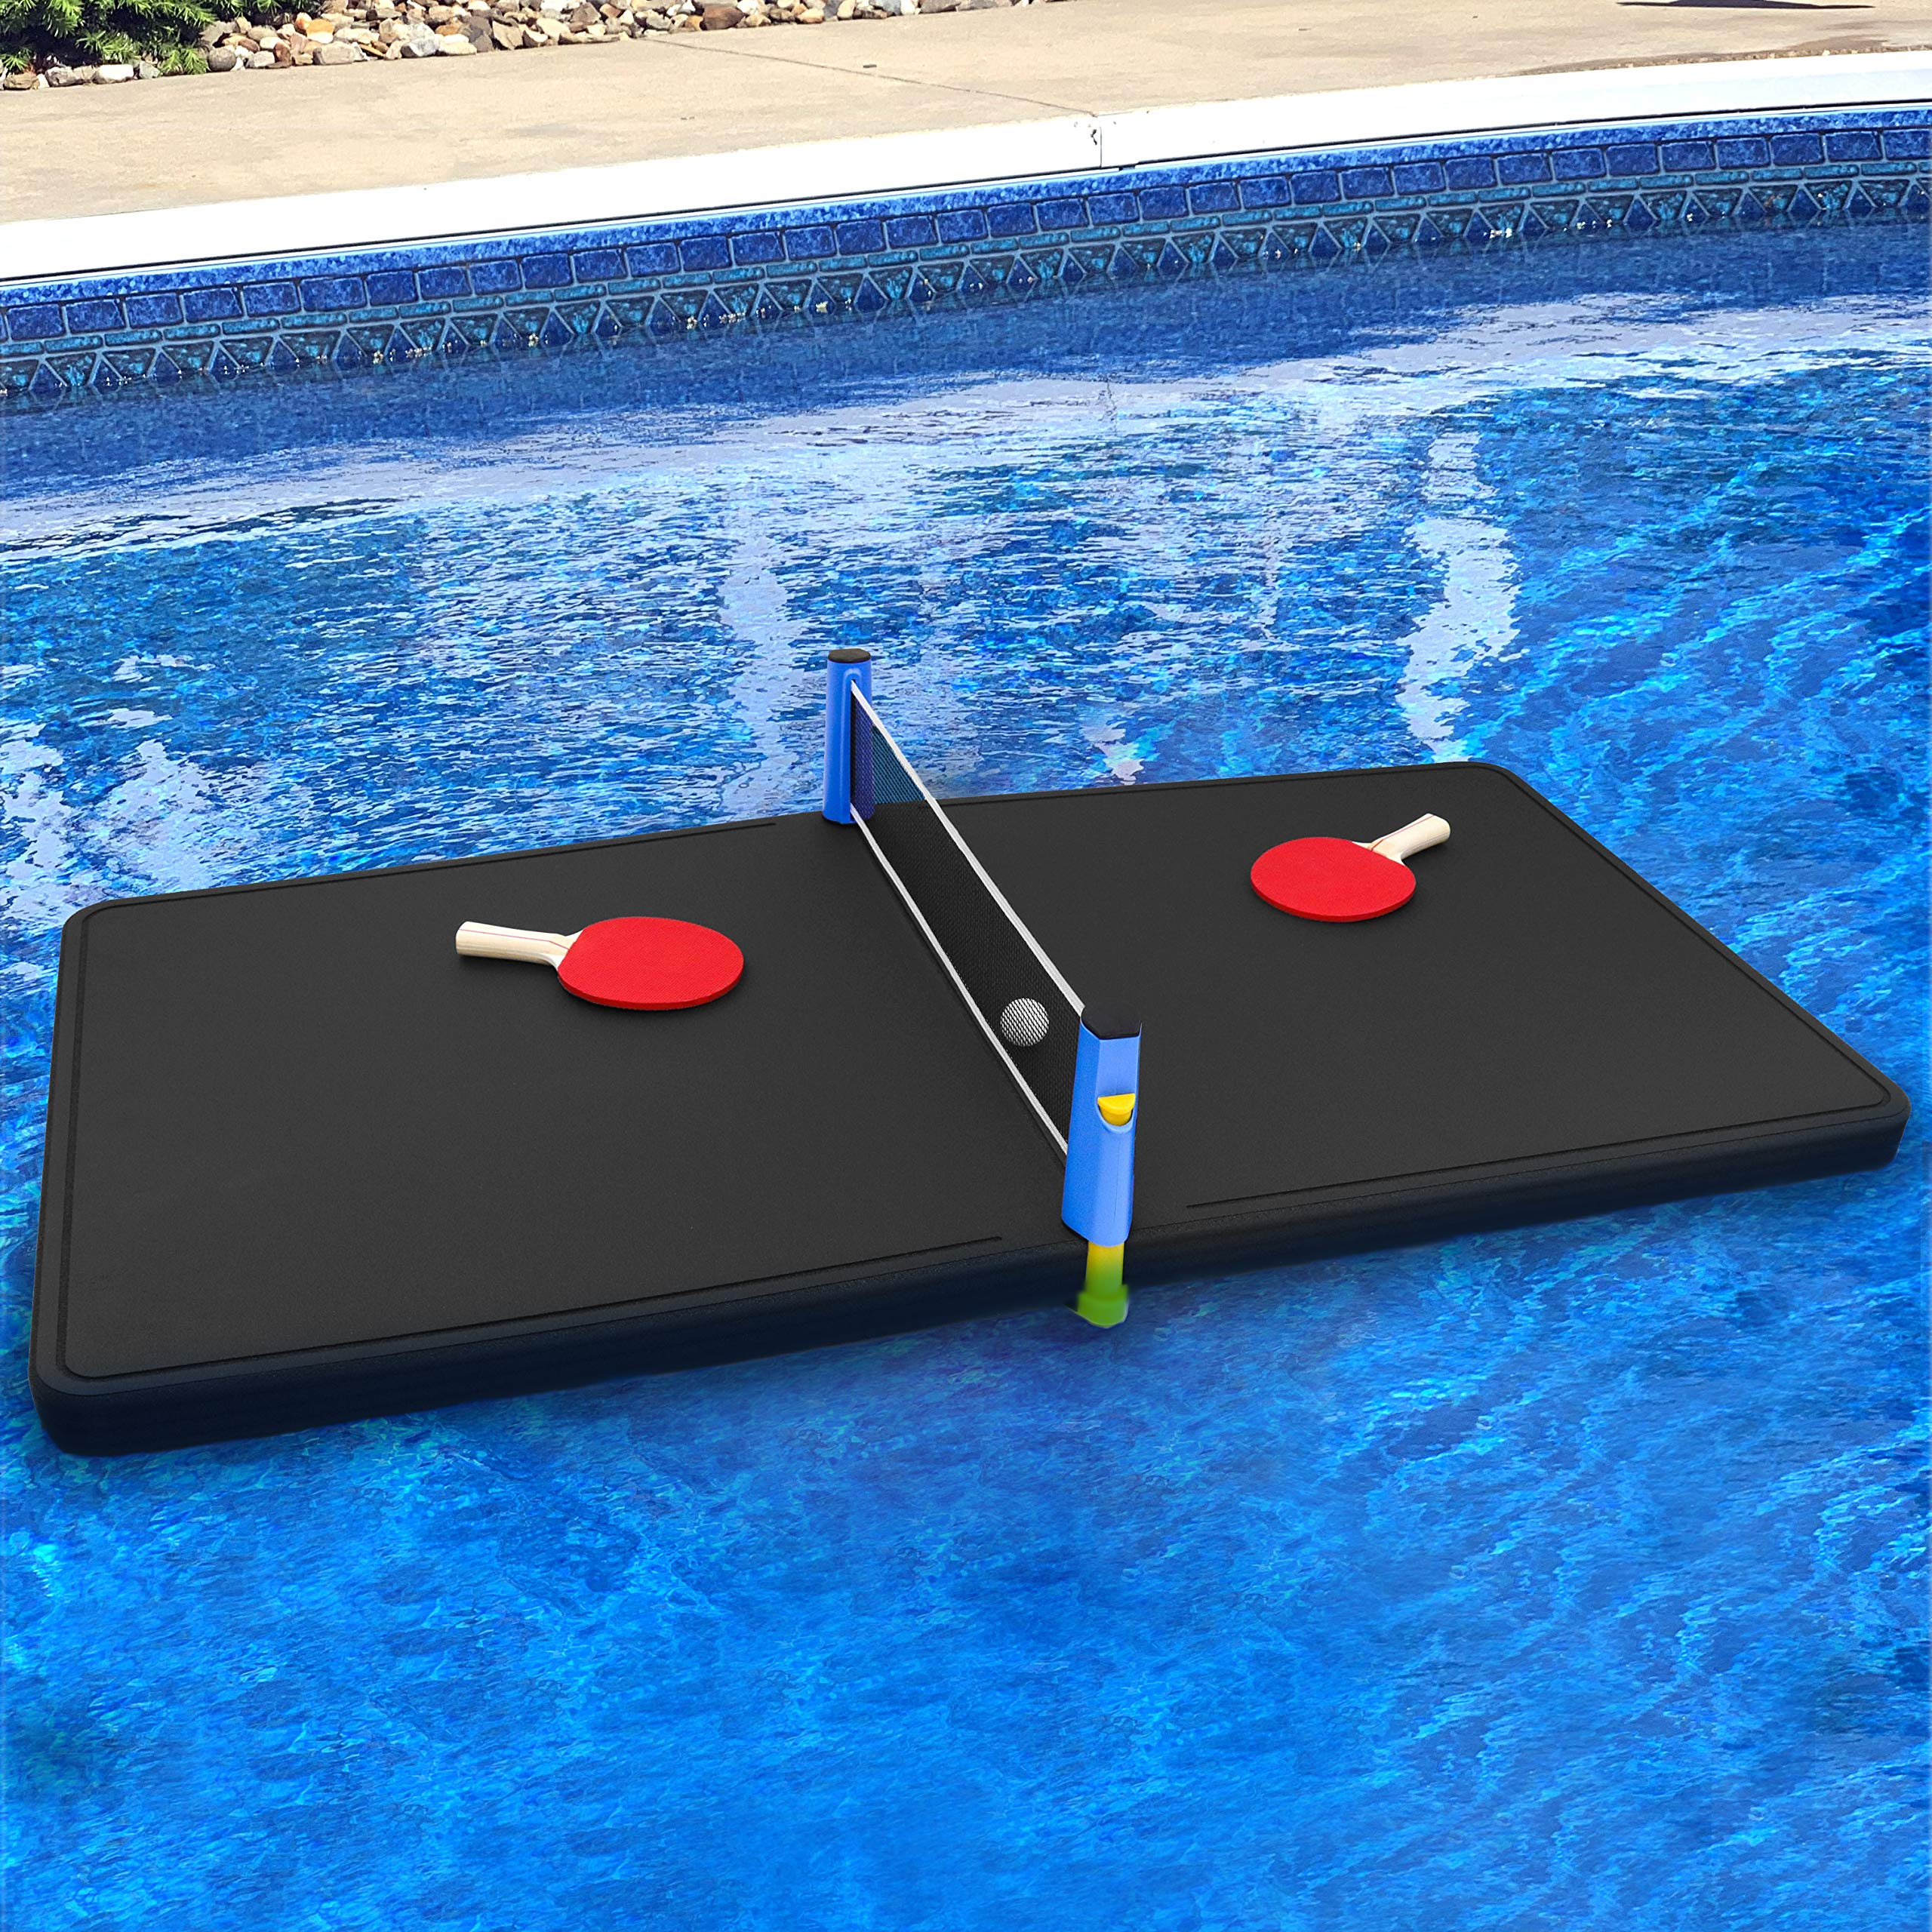 Polar Whale Floating Ping Pong Table Pool Party Table Tennis Float Game Durable Black Foam 5 Feet Long Uv Resistant Includes Net Paddles and Balls Made in USA by Polar Whale